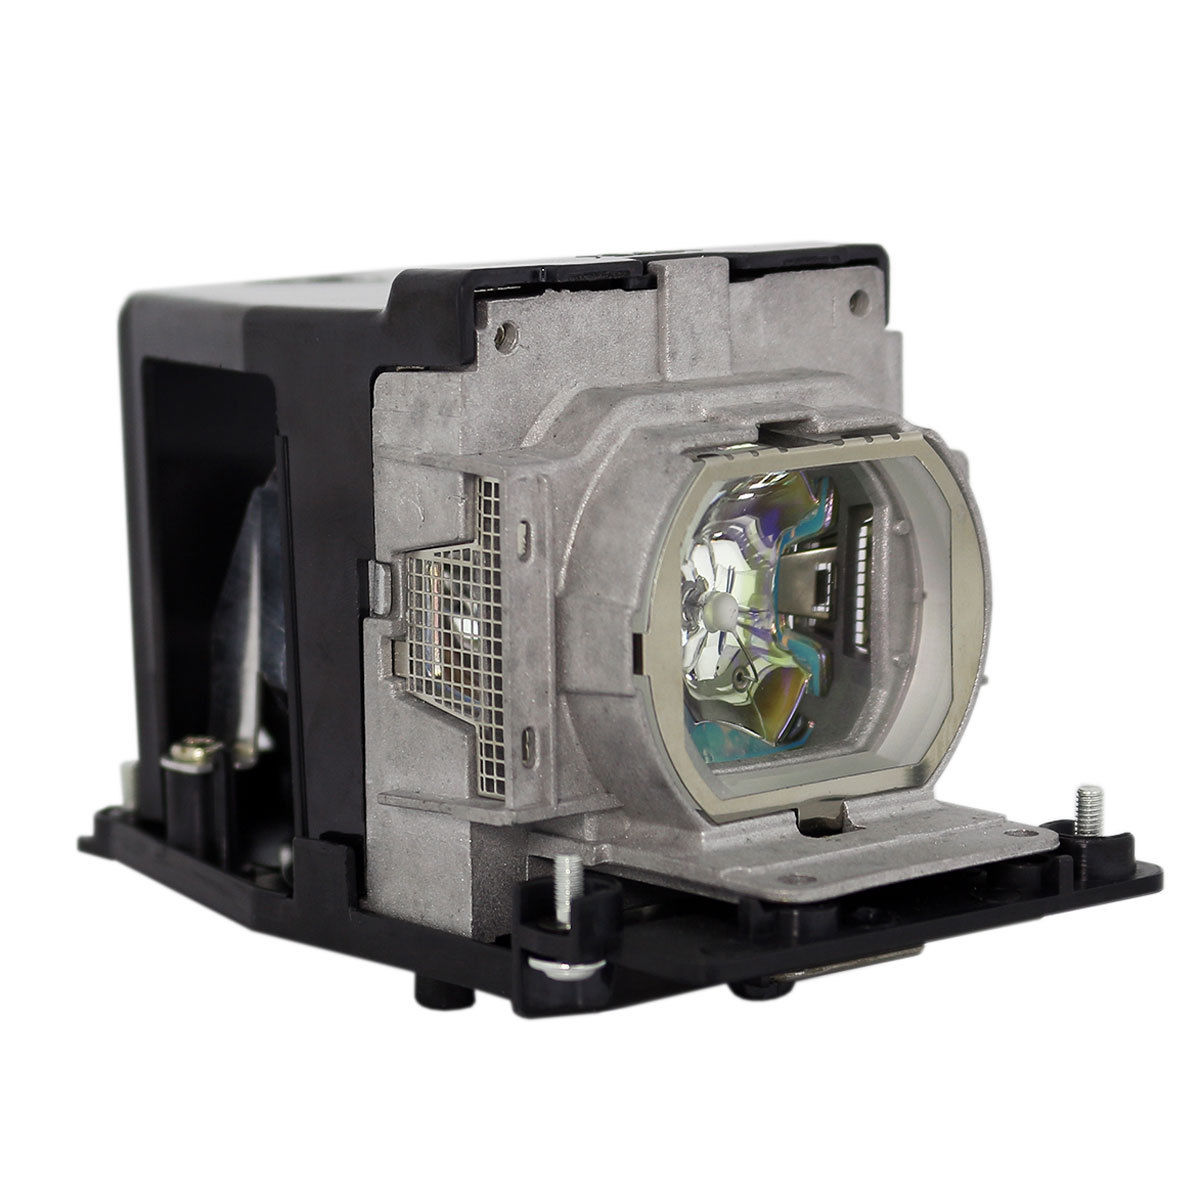 Projector Lamp Bulb TLPLW12 TLP-LW12 for TOSHIBA TLP-X3000 TLP-X300 TLP-XC3000 with housing festo catalog